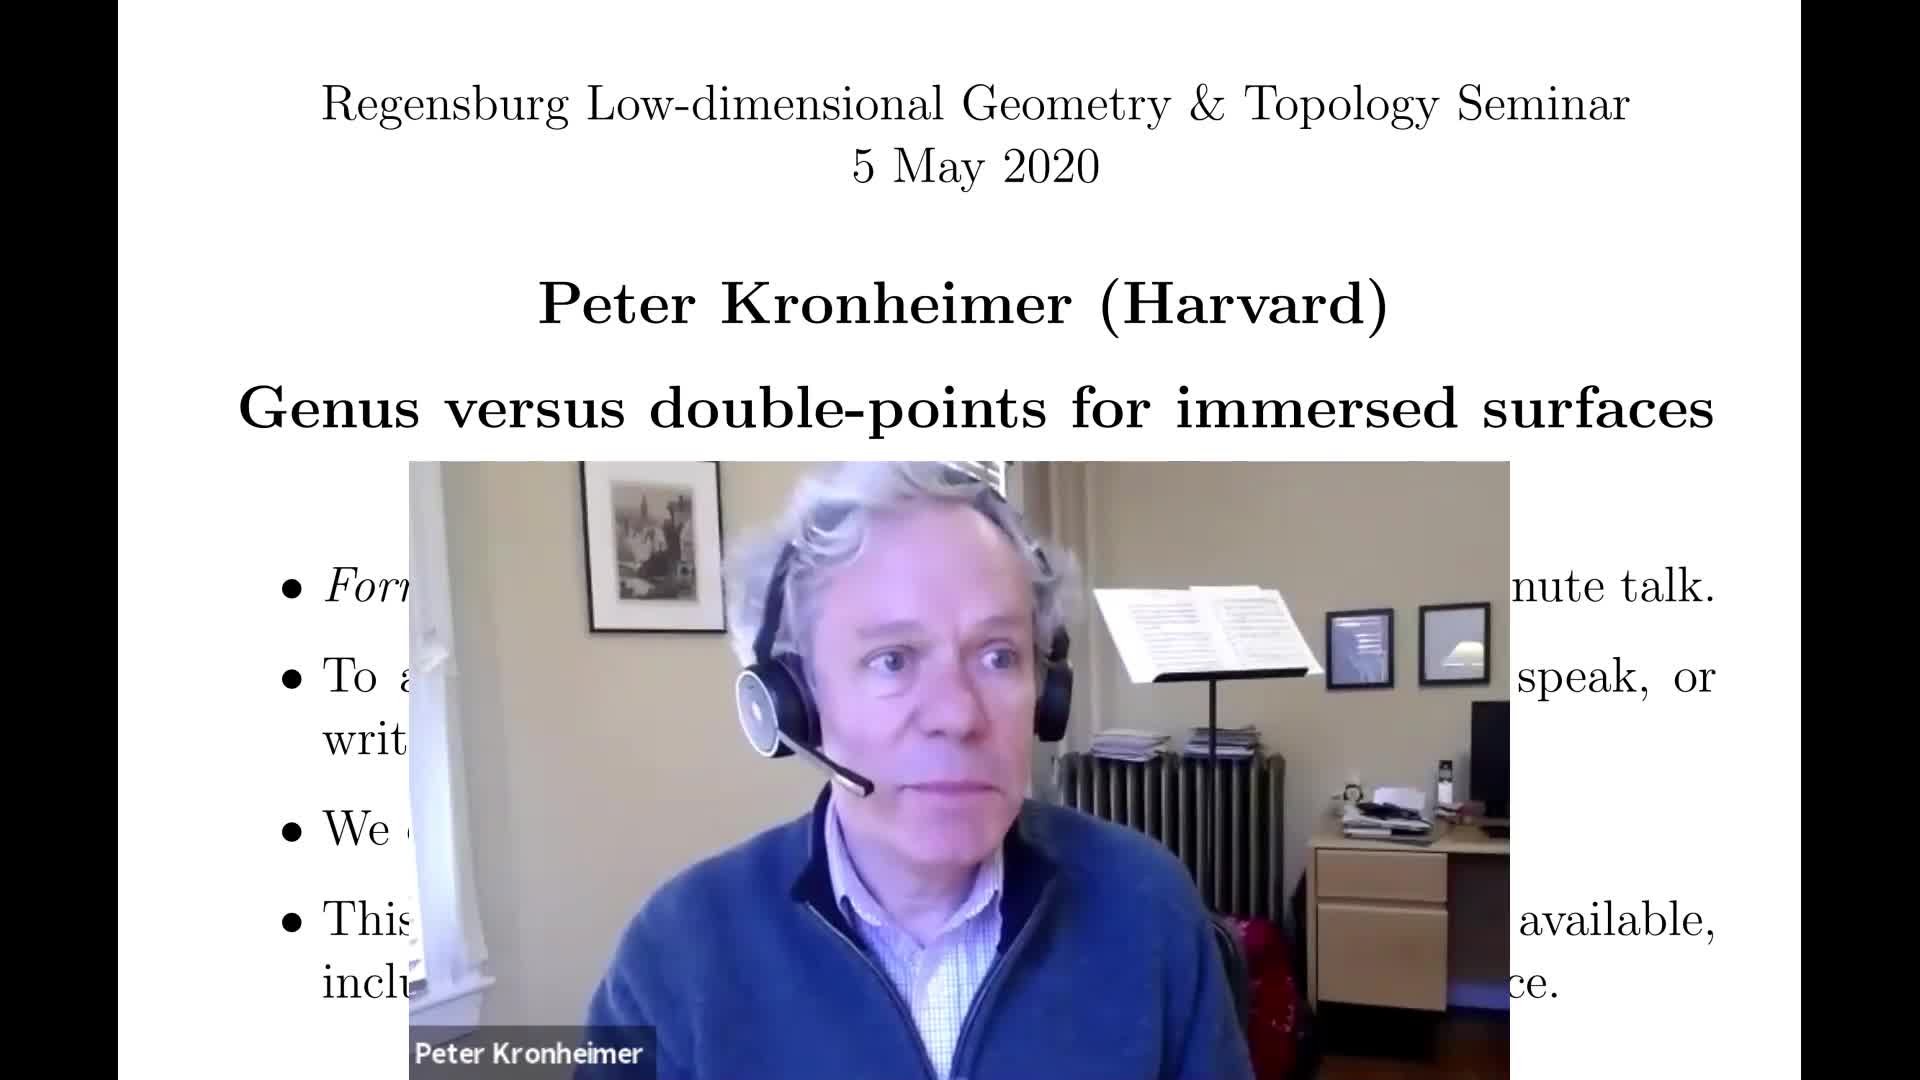 Peter Kronheimer: Genus versus double-points for immersed surfaces (RLGTS, 5 May 2020)